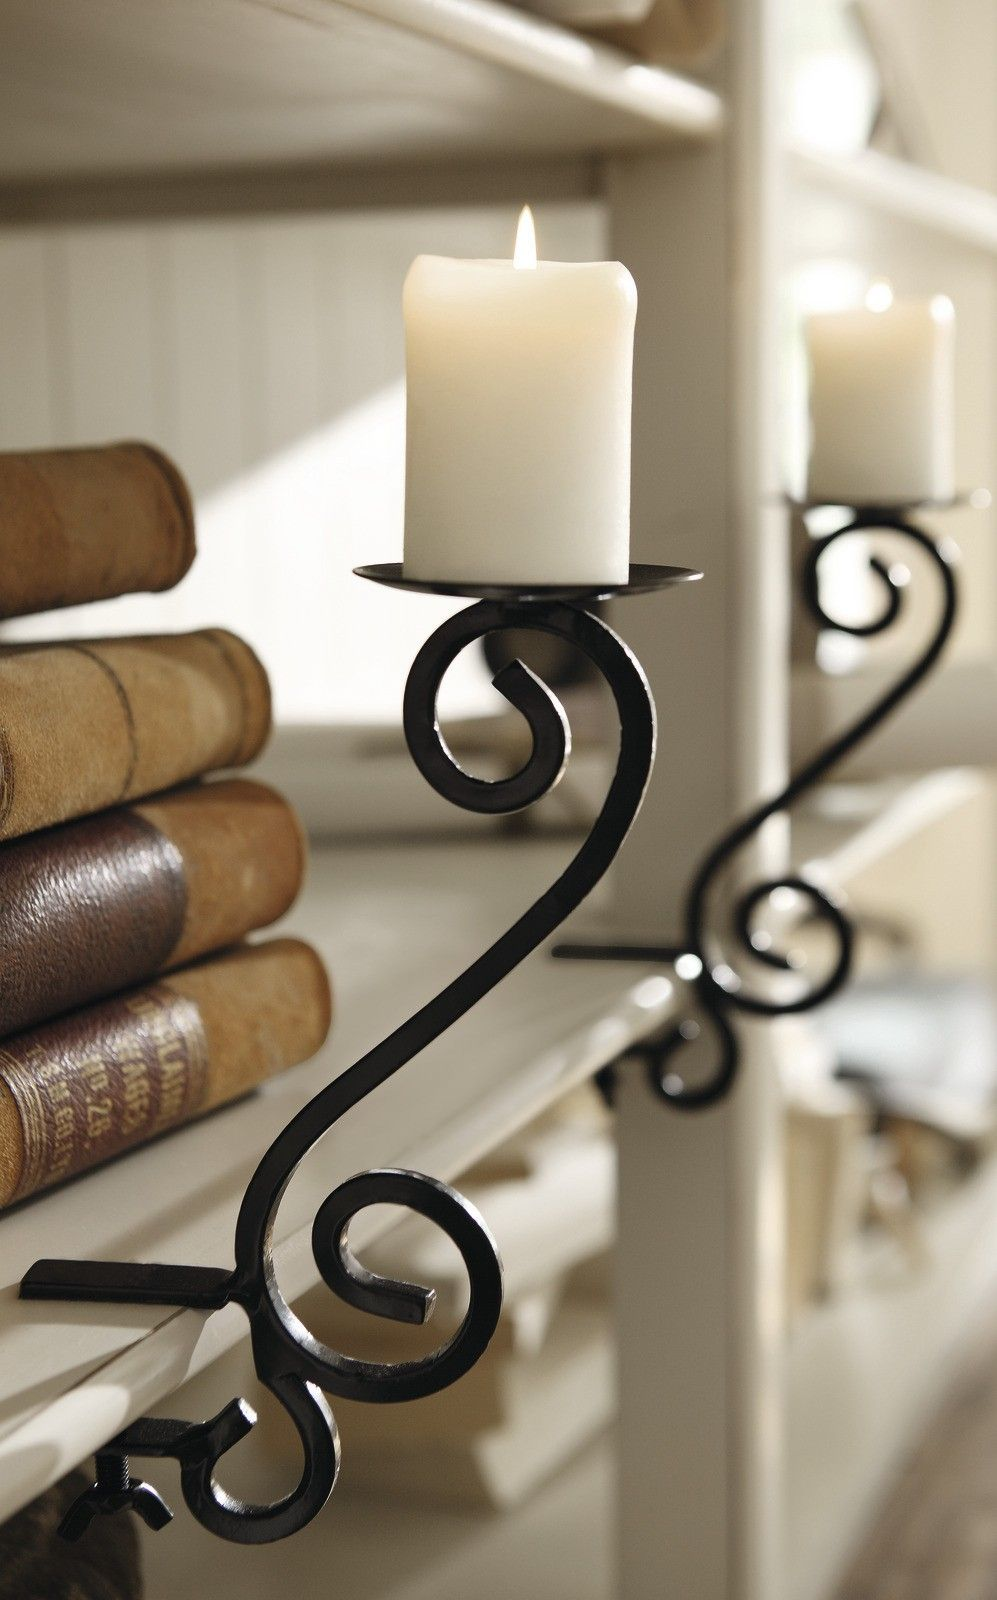 Candle Holders That Attach To Shelves - Great Idea